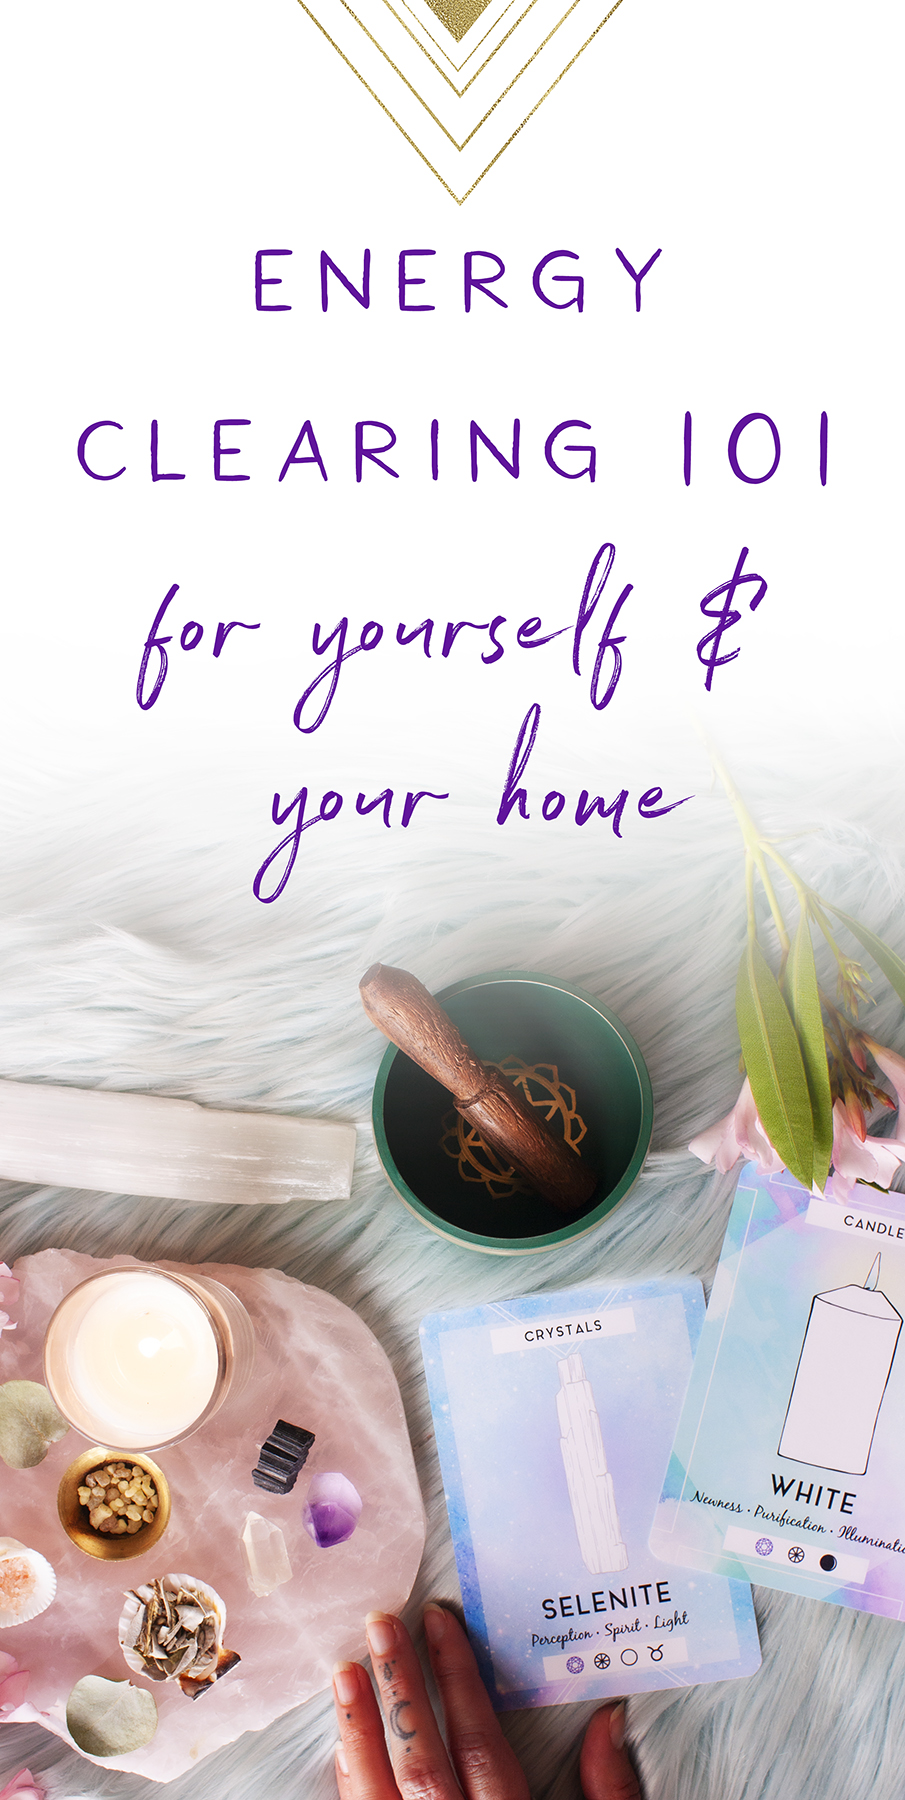 energy-cleansing-energy-clearing-diy-energy-cleansing-how-to-cleanse-your-house-how-to-cleanse-your-energy